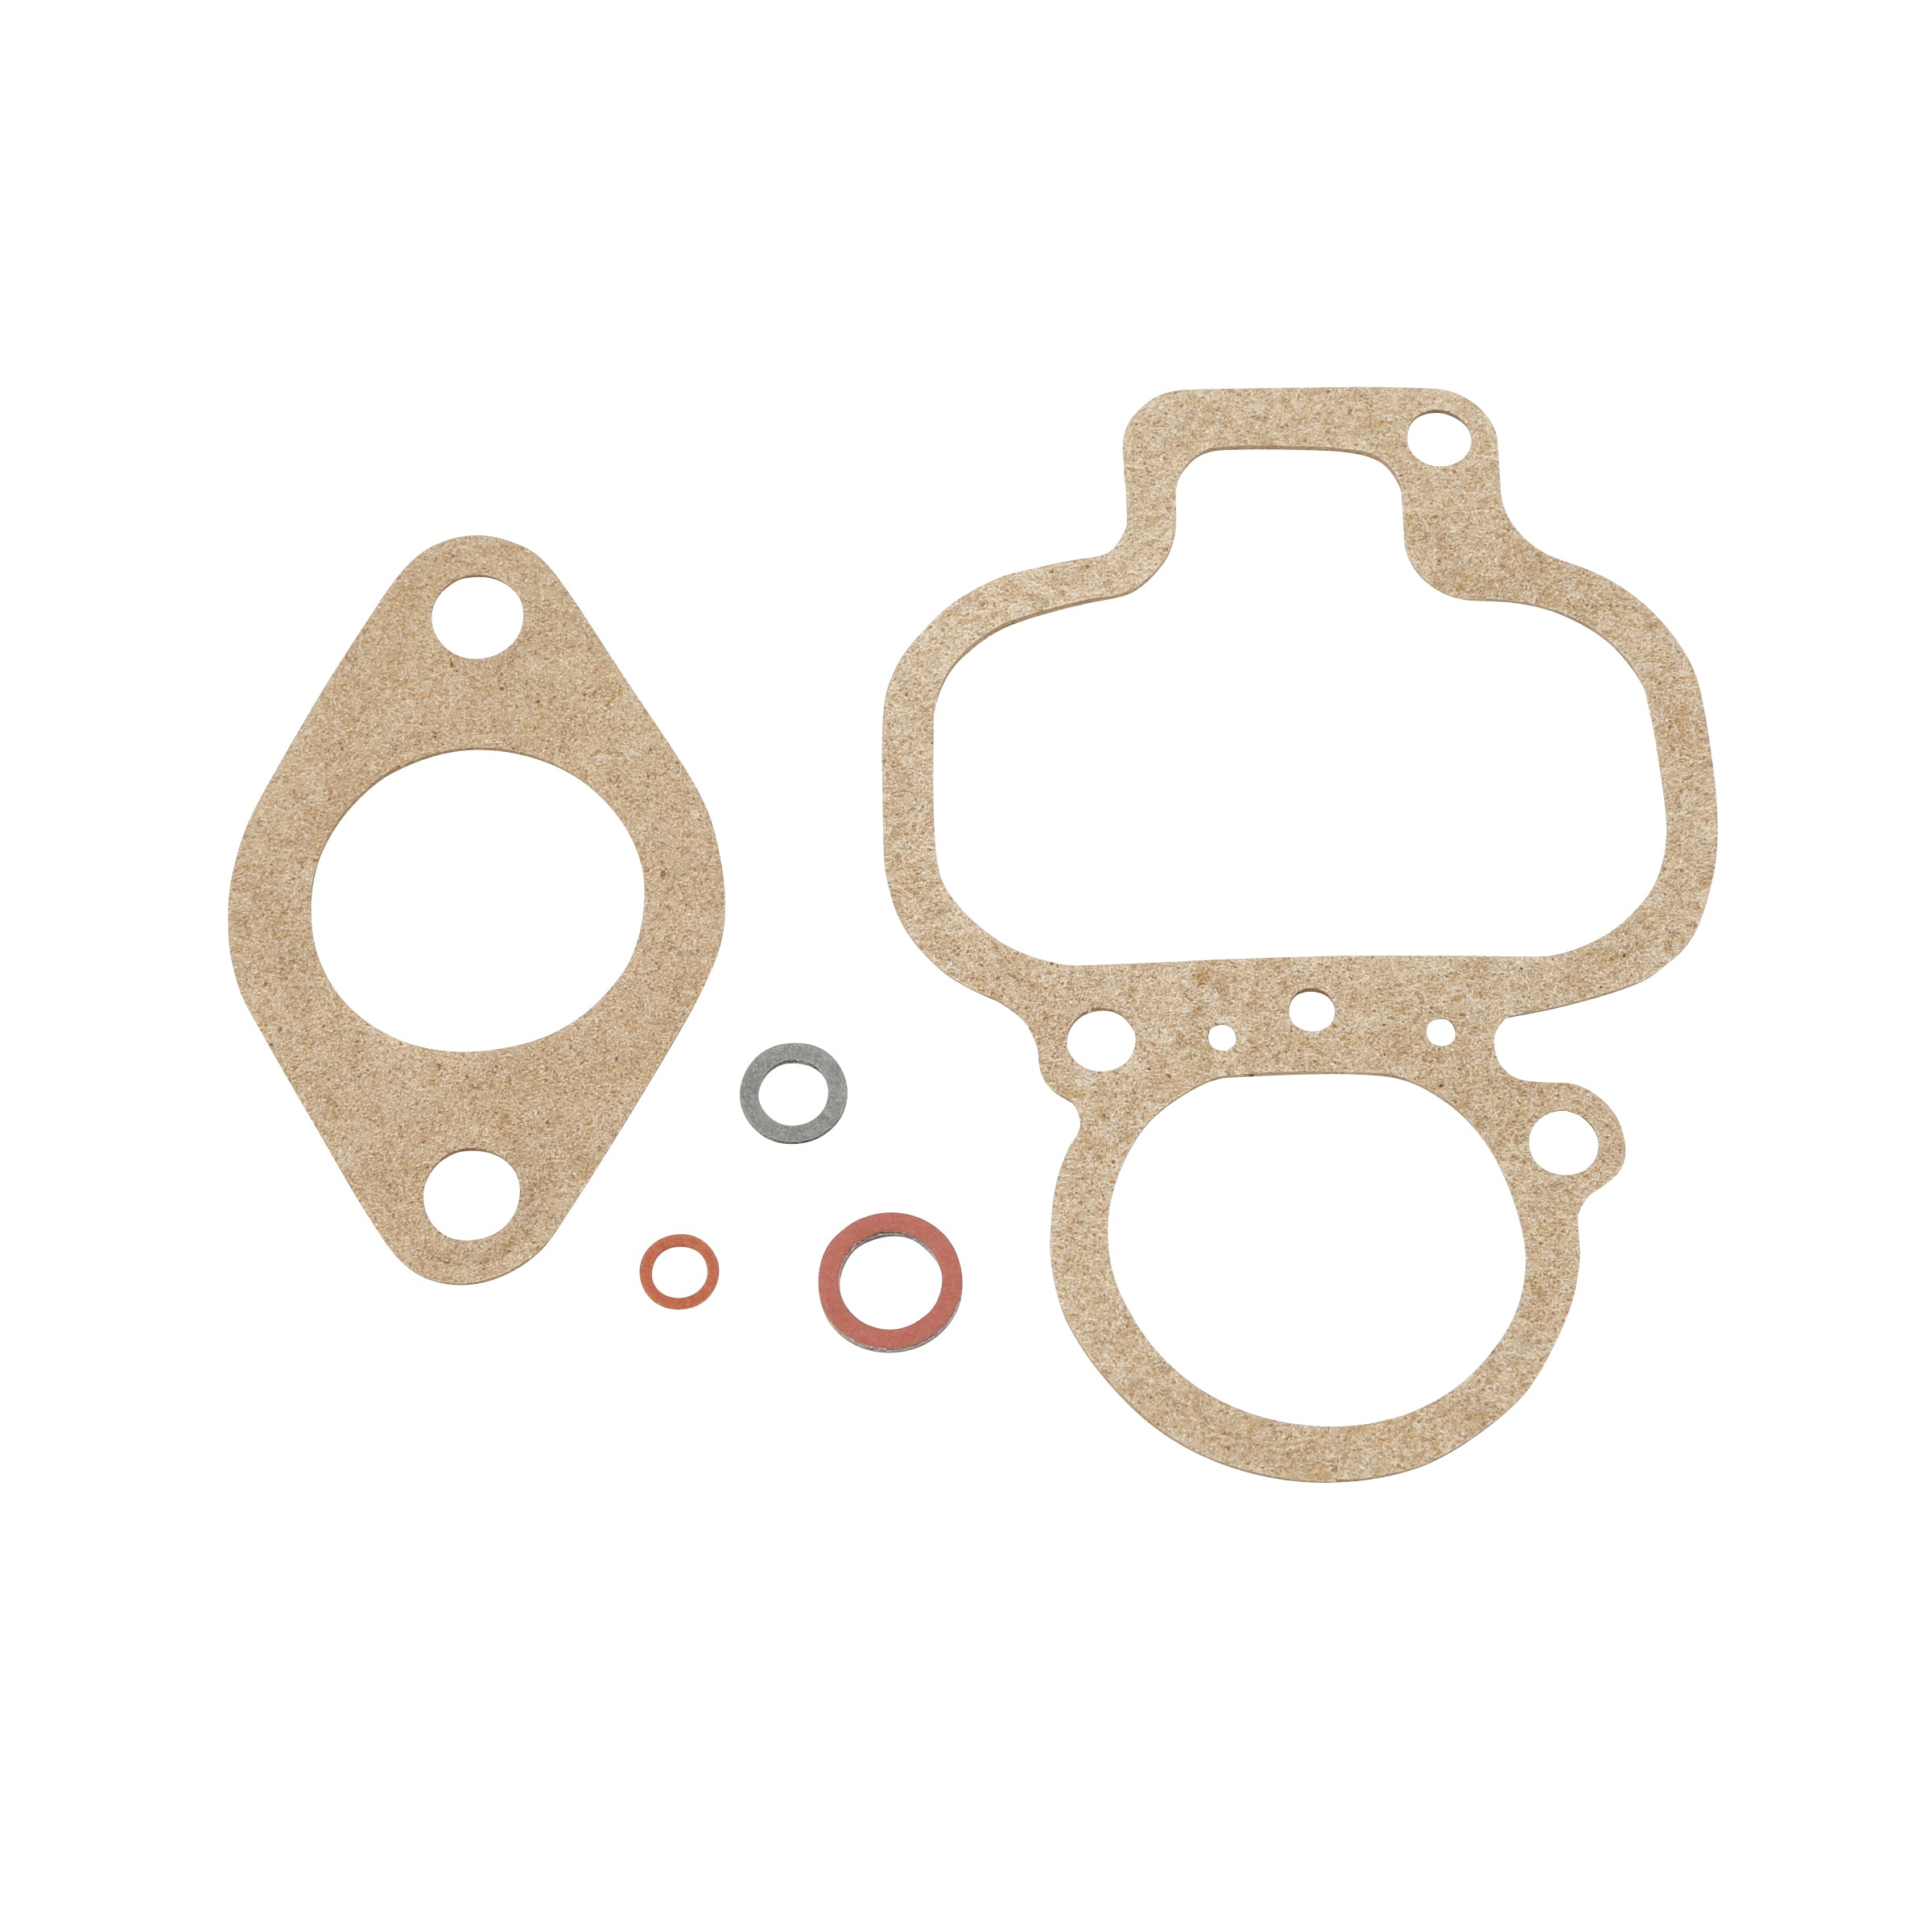 Carburetor Gasket Set (Tillotson) • 1928-31 Model A Ford